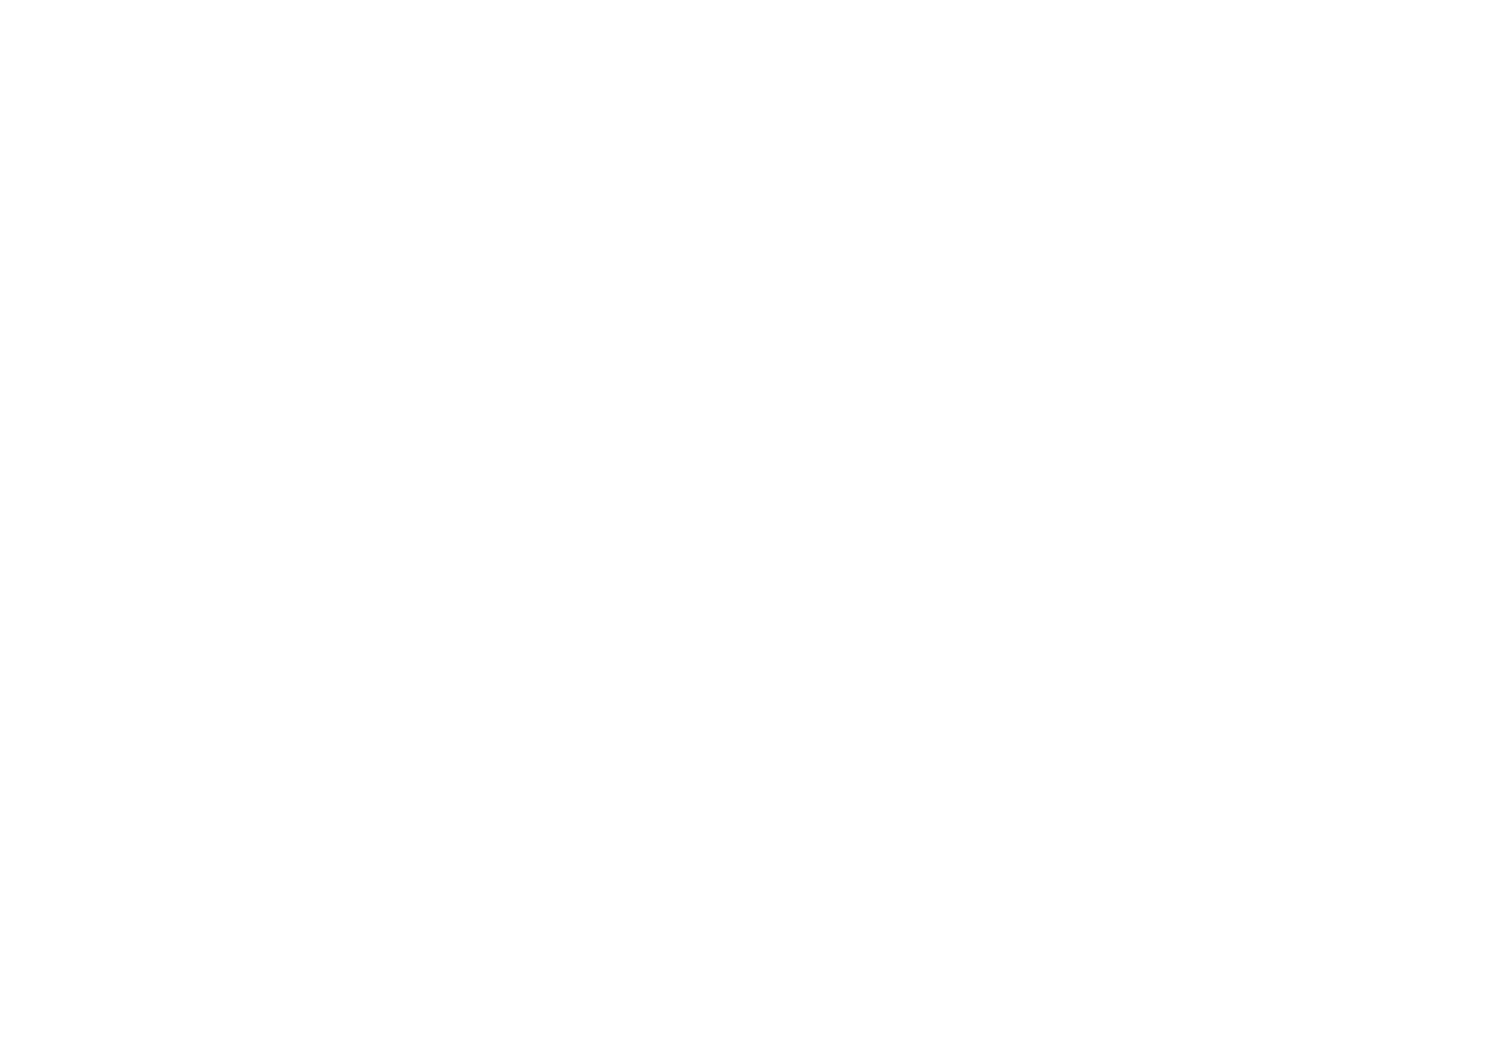 Mountain Goat Guiding